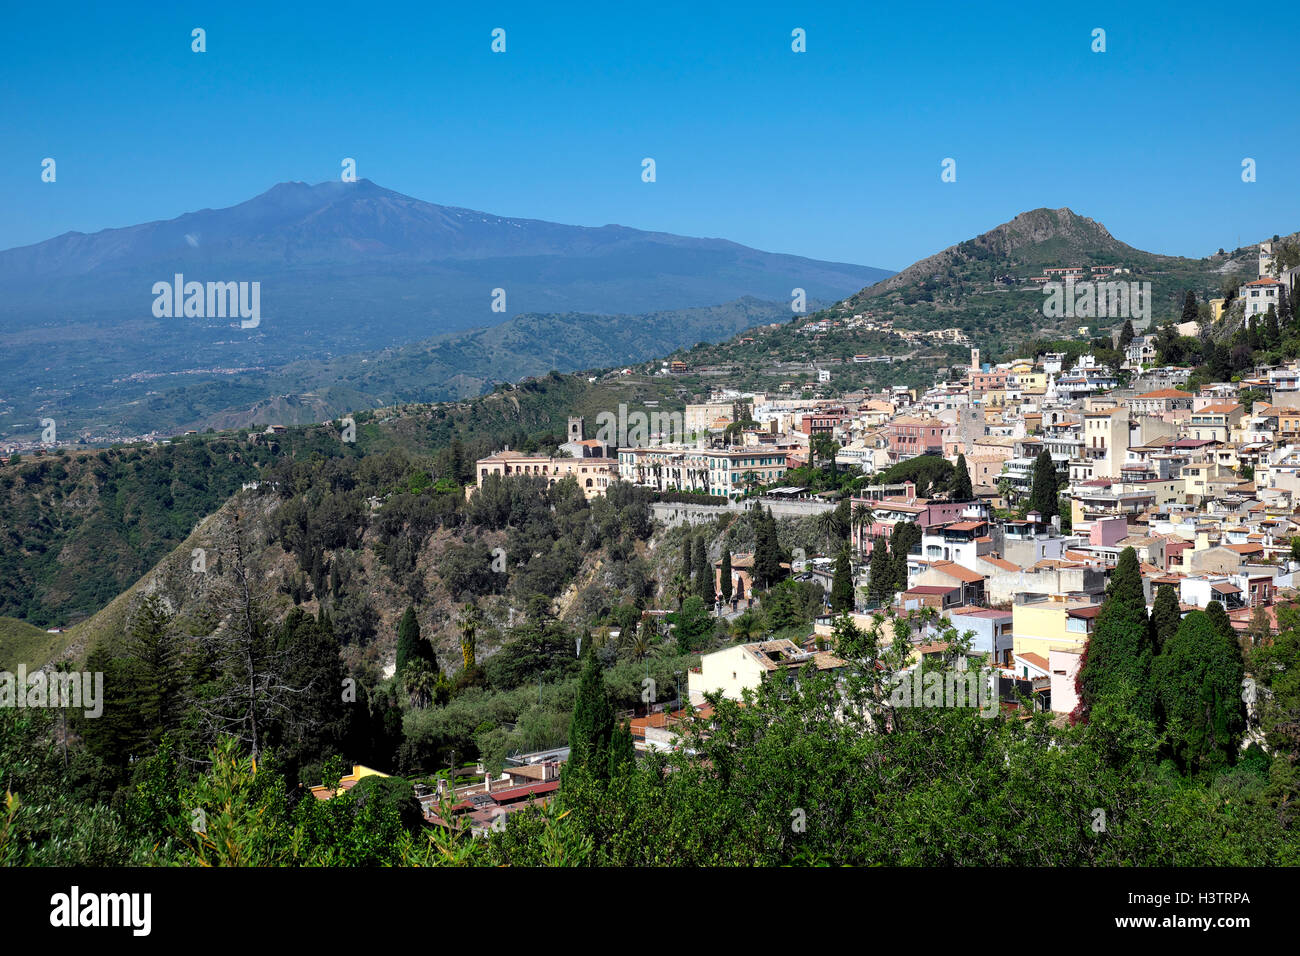 The hilltop city of Taormina with Mount Etna, Sicily, Italy - Stock Image